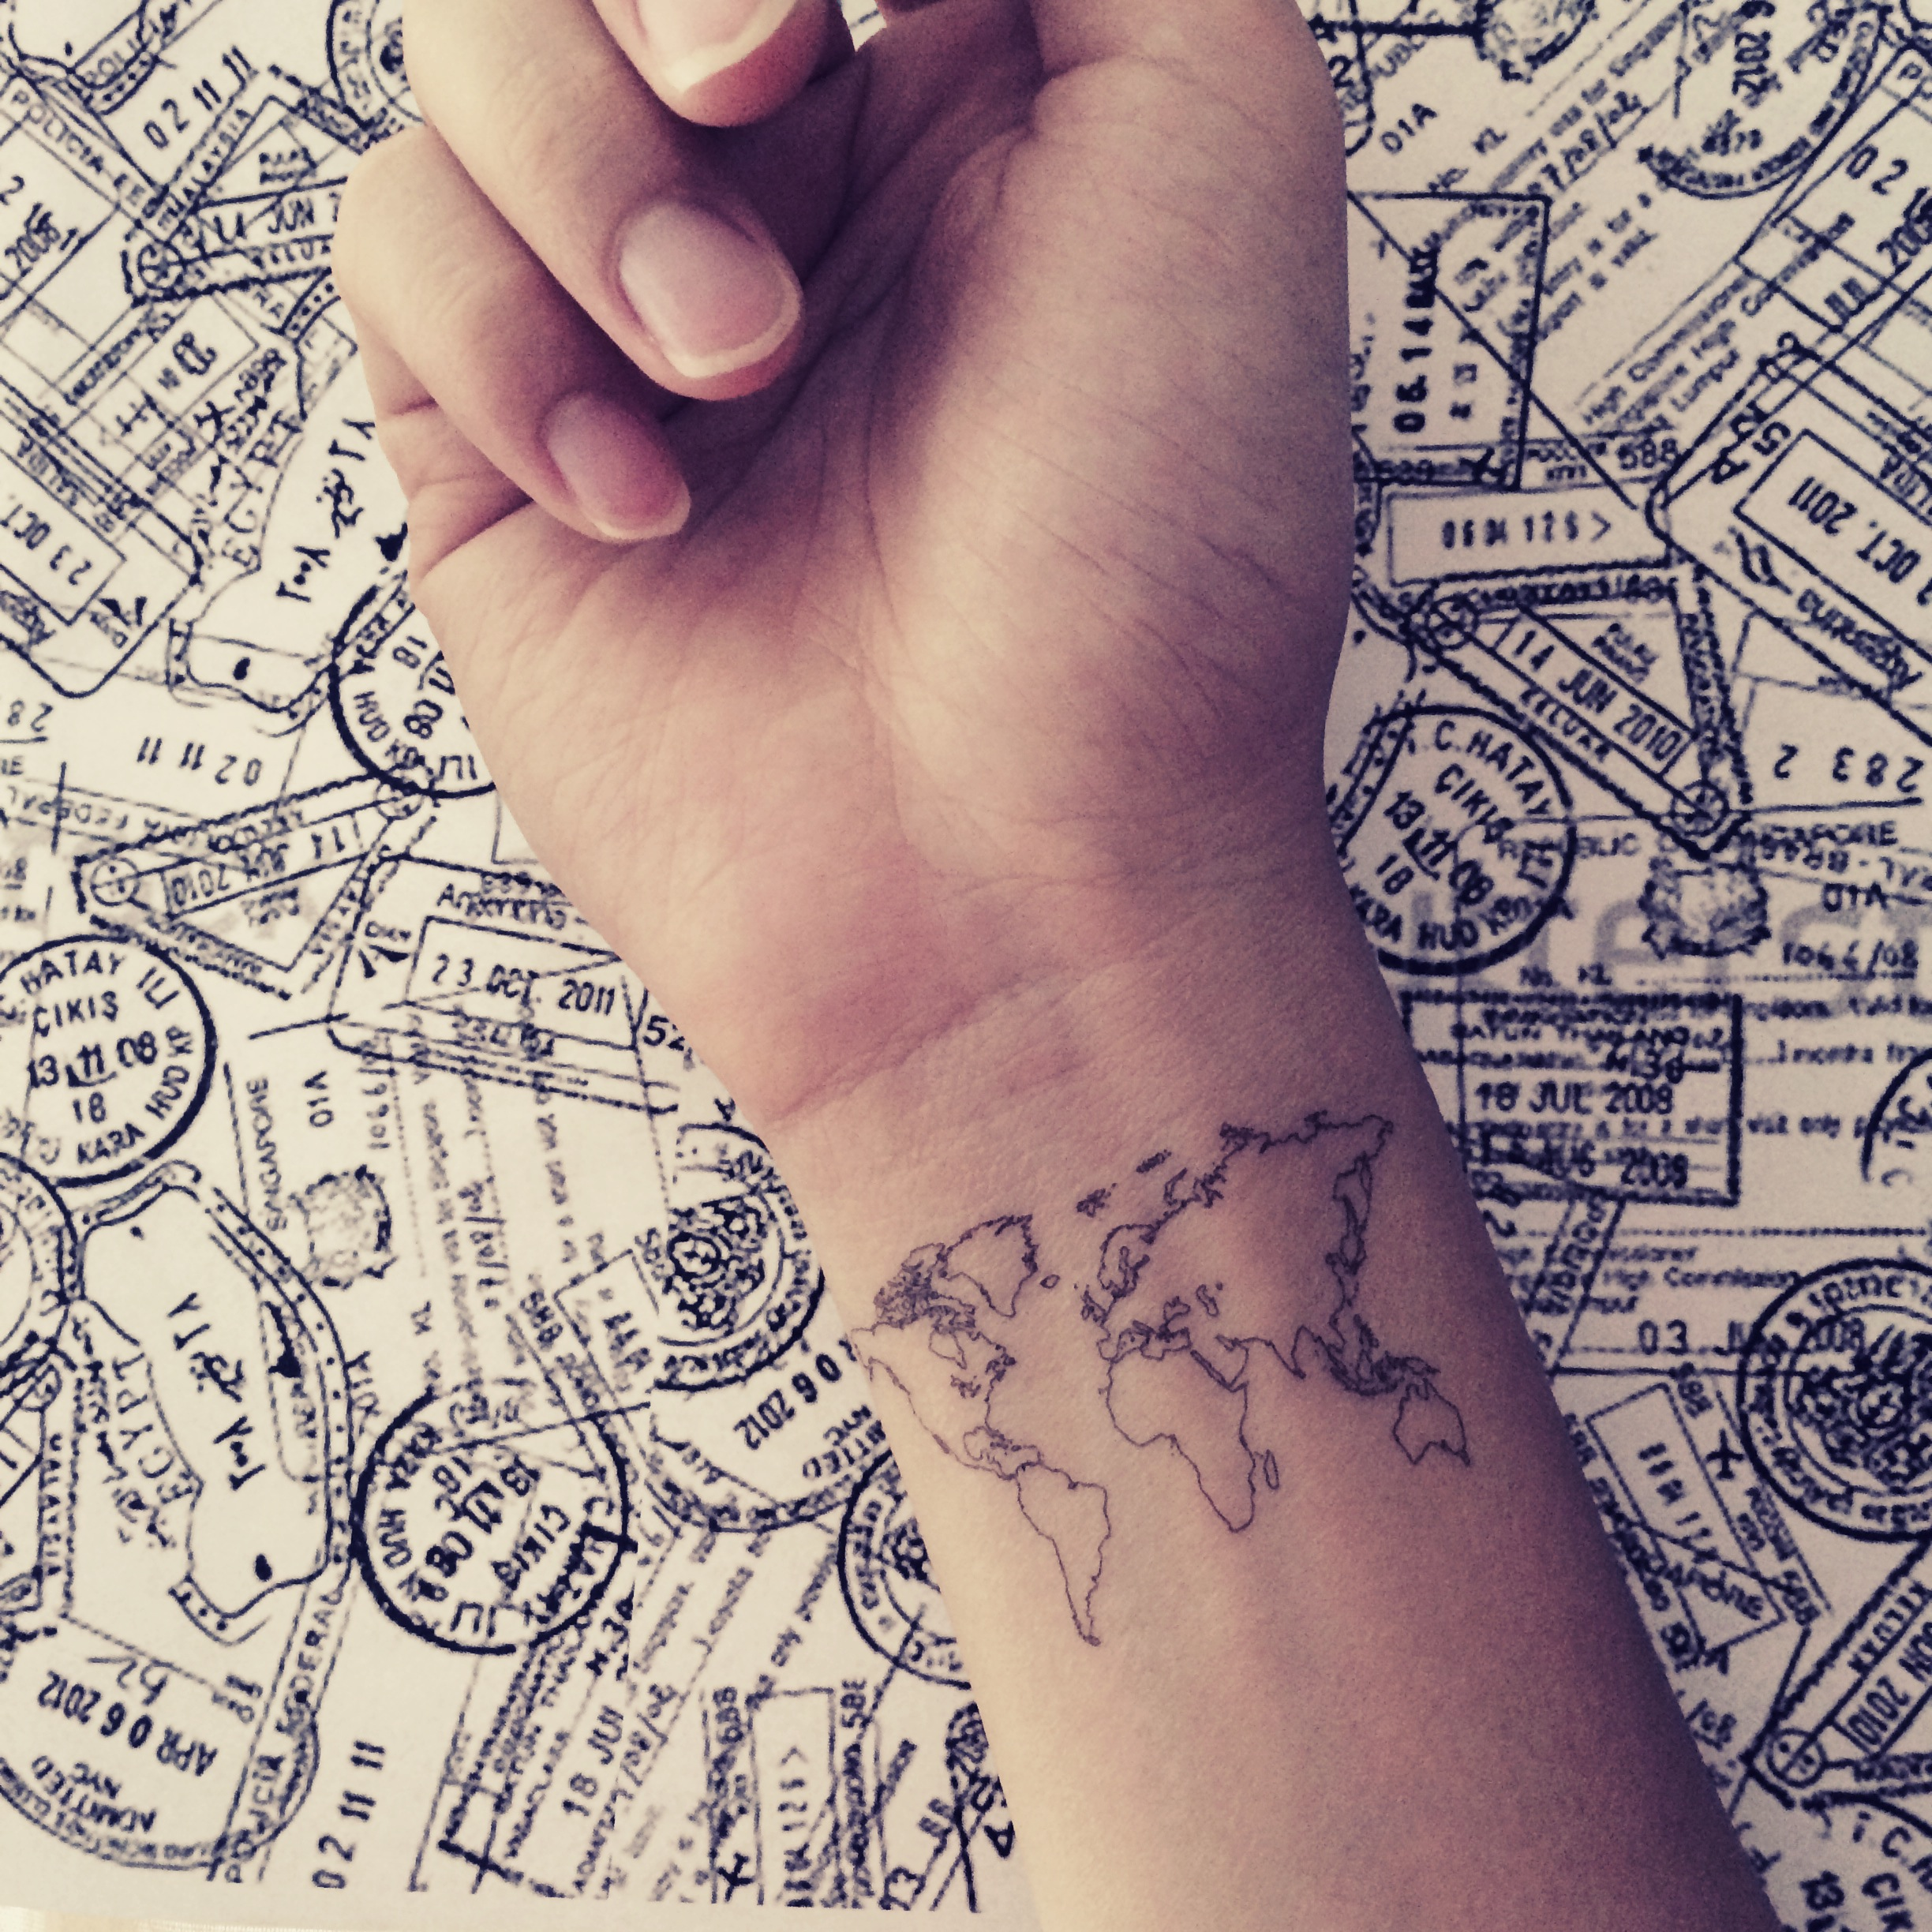 2pcs world map love travel wrist tattoo inknart temporary tattoo 2pcs world map love travel wrist tattoo inknart temporary tattoo wrist quote tattoo body gumiabroncs Image collections